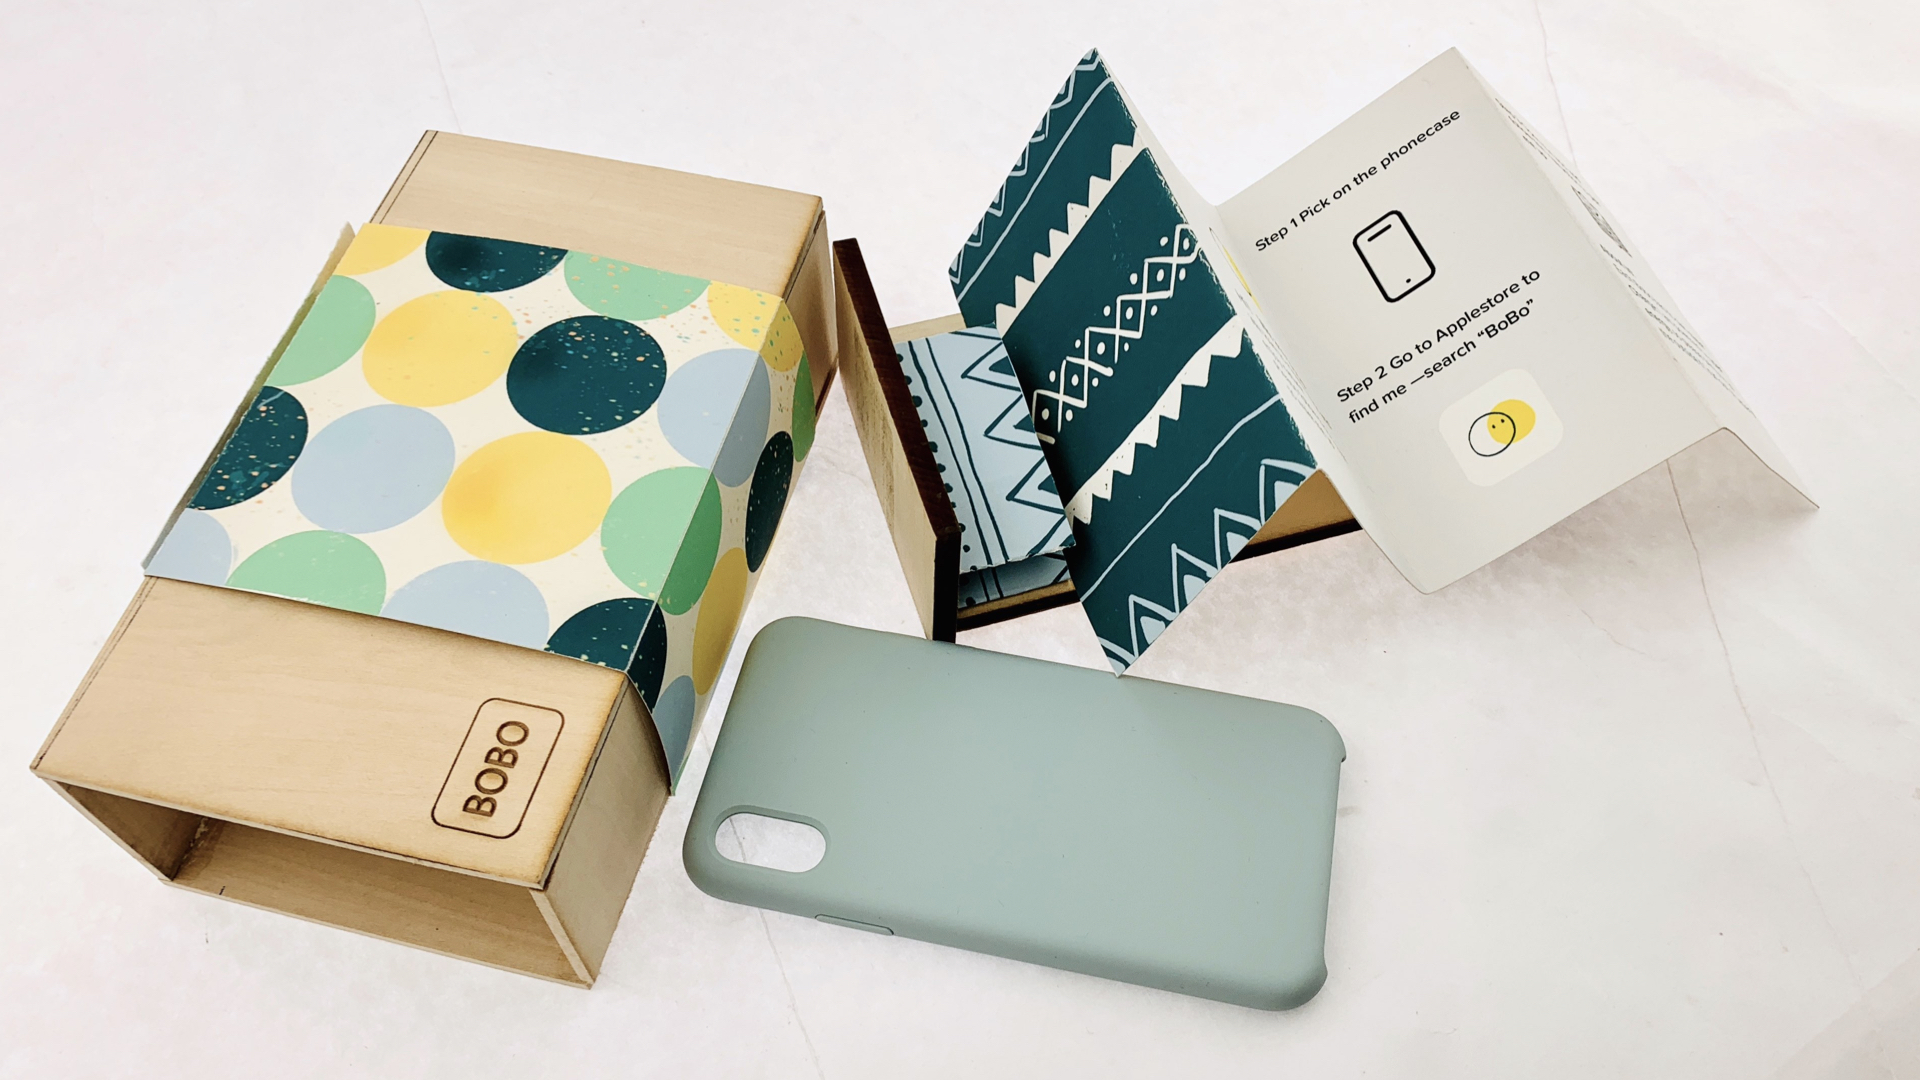 Packaging / instruction / product1.0